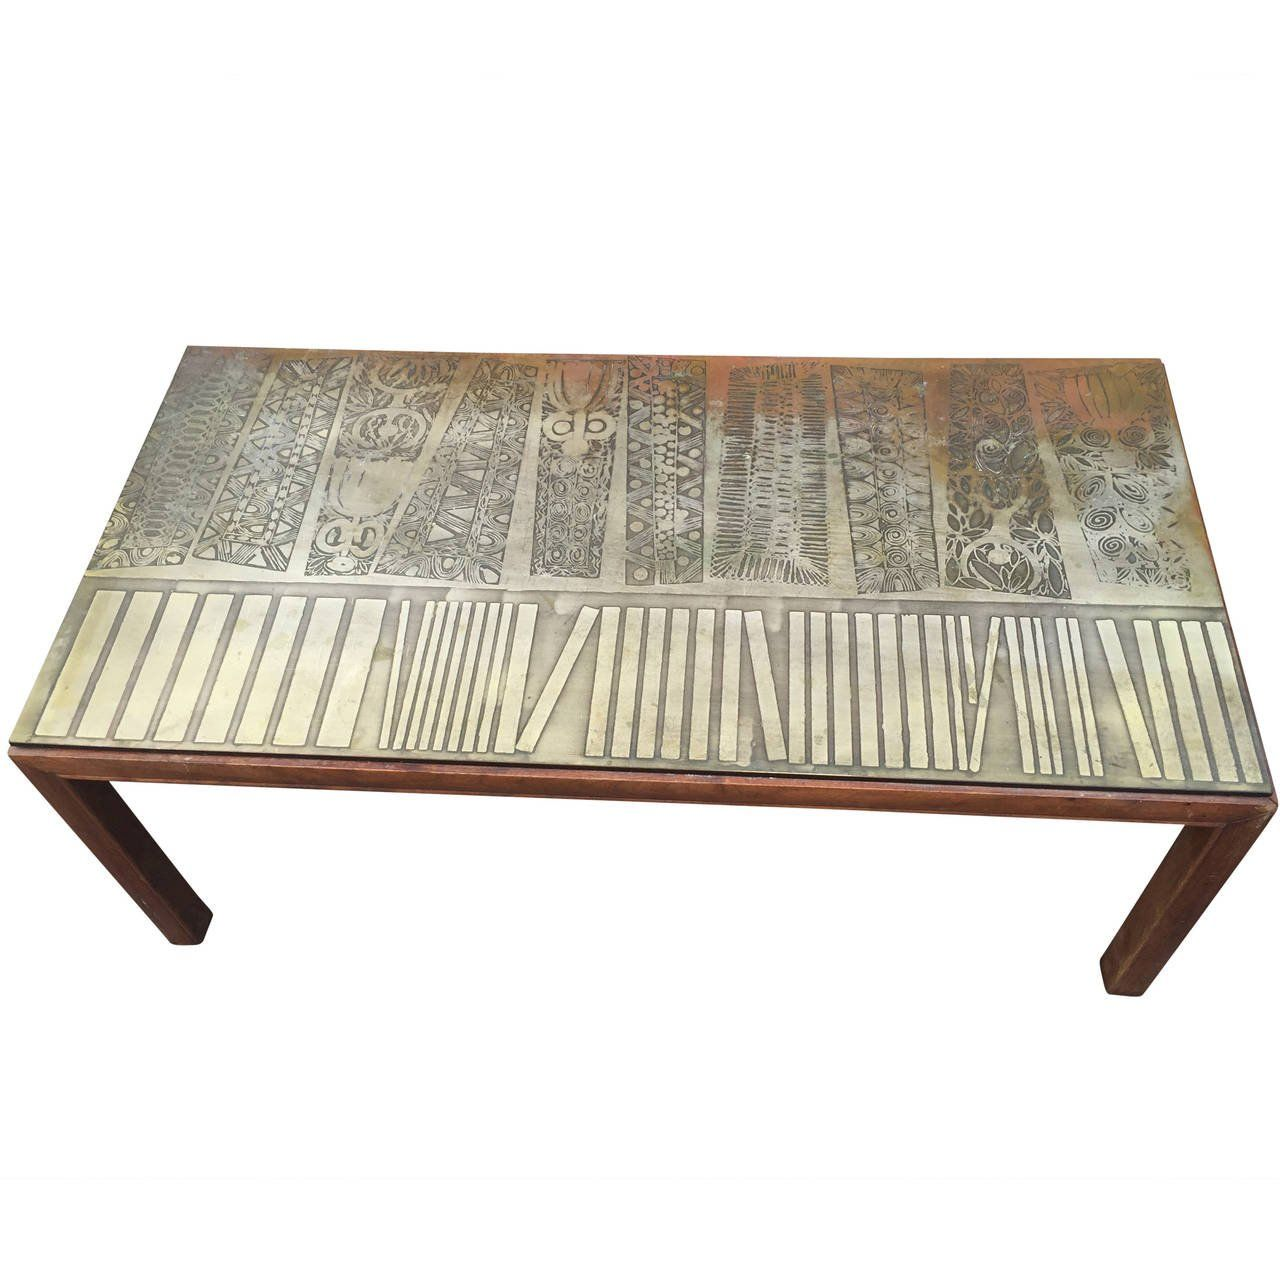 Italian Modernist Coffee Table With Etched Metal Top 1